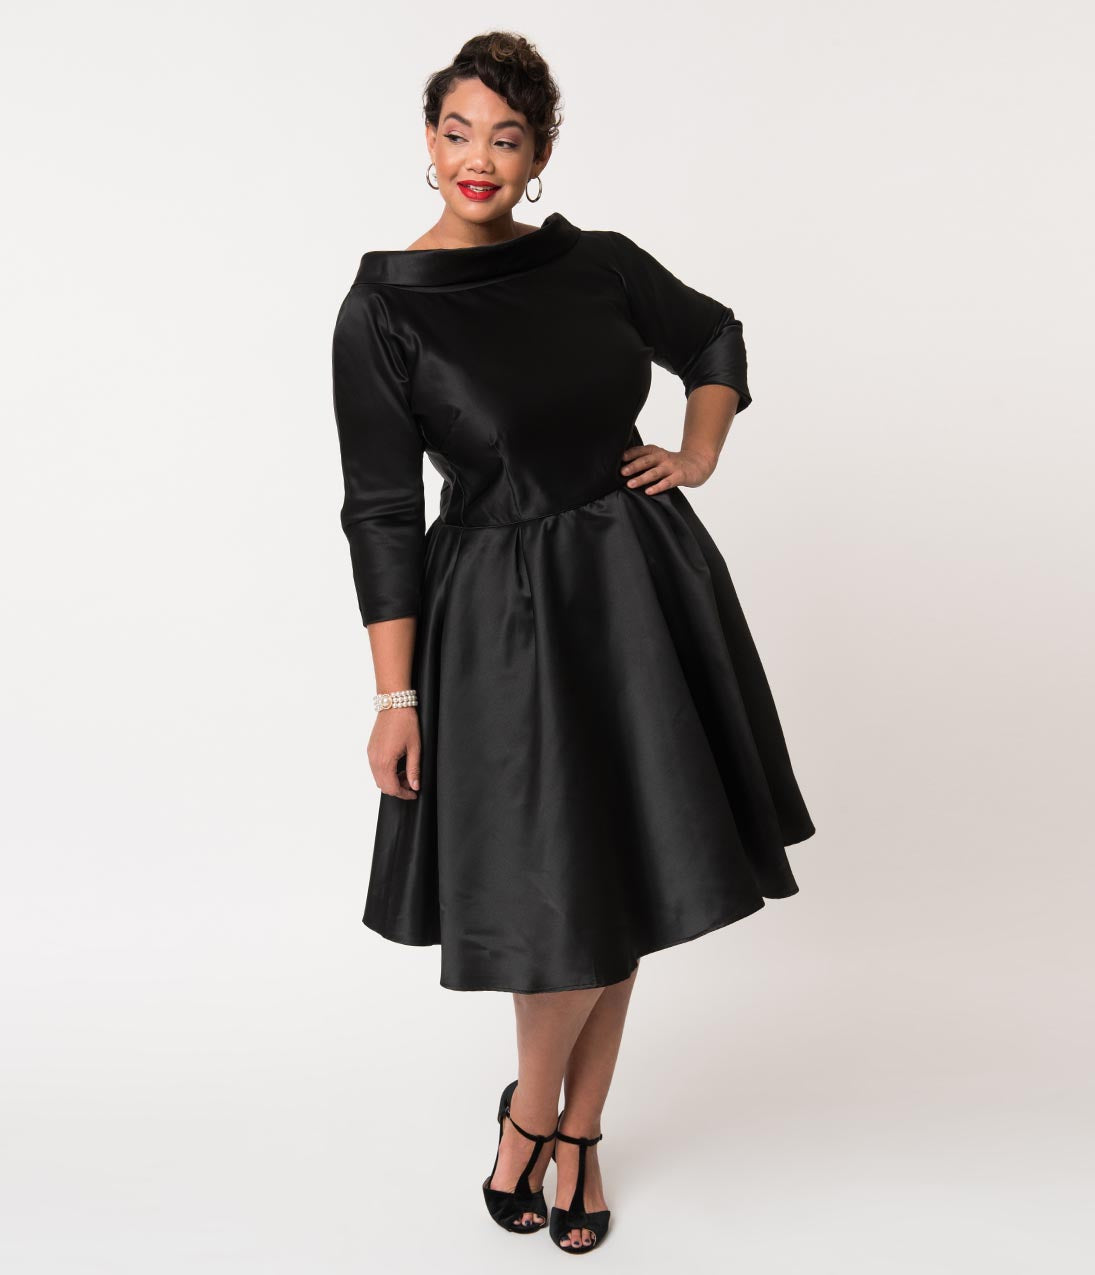 Vintage Evening Dresses and Formal Evening Gowns Unique Vintage Plus Size 1950S Style Black Satin Sleeved Lana Holiday Dress $128.00 AT vintagedancer.com